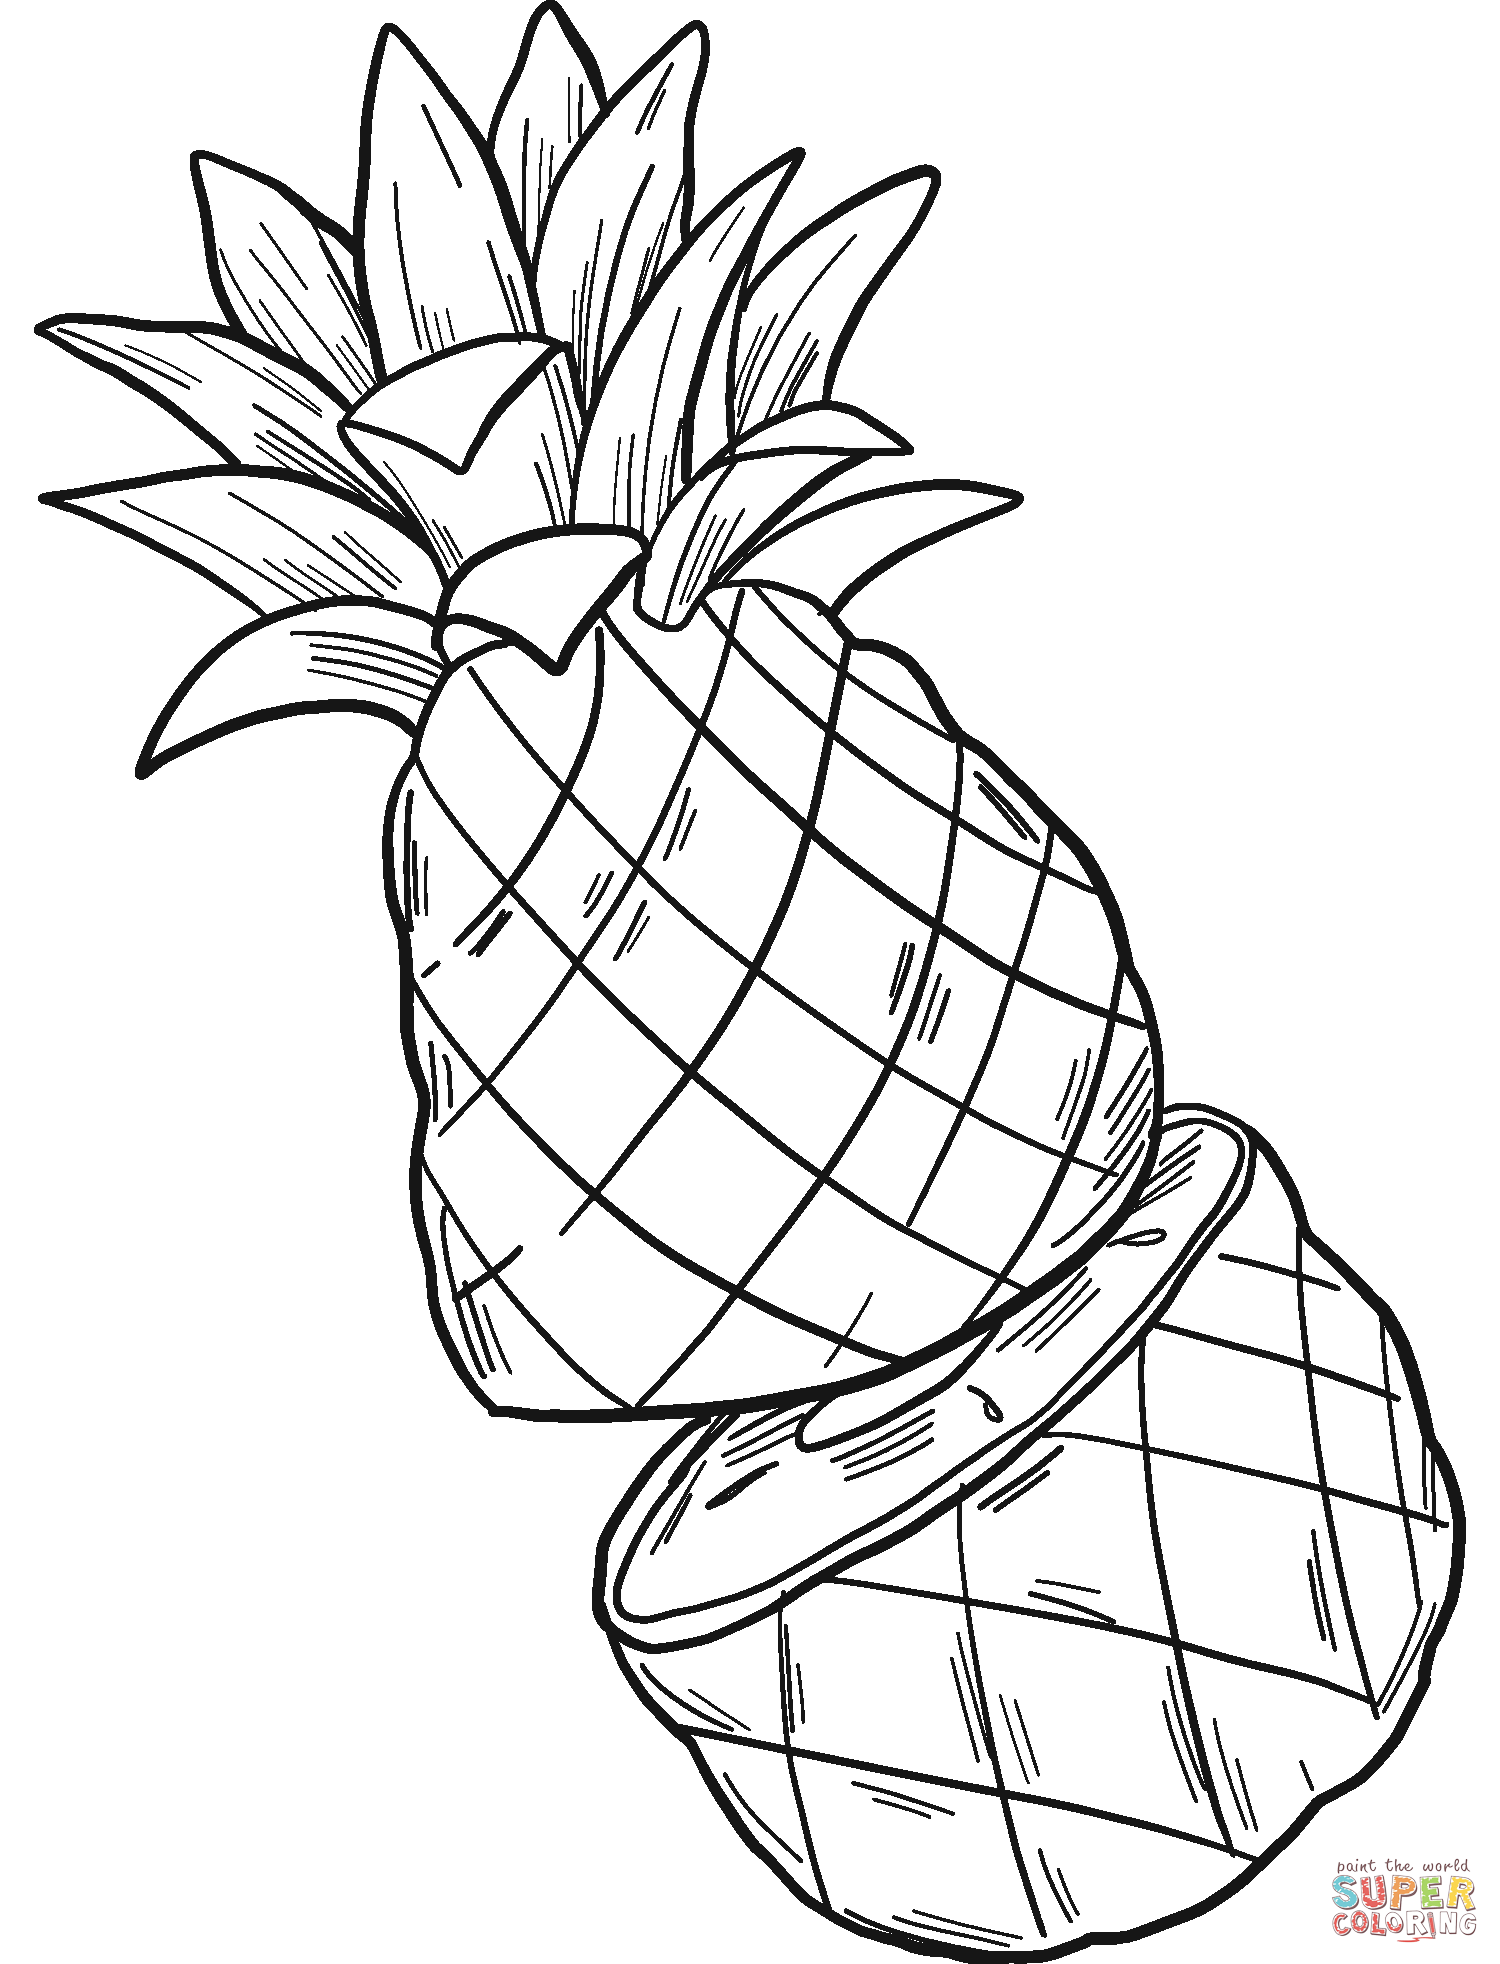 coloring pictures of pineapple free printable pineapple coloring pages for kids pictures of coloring pineapple